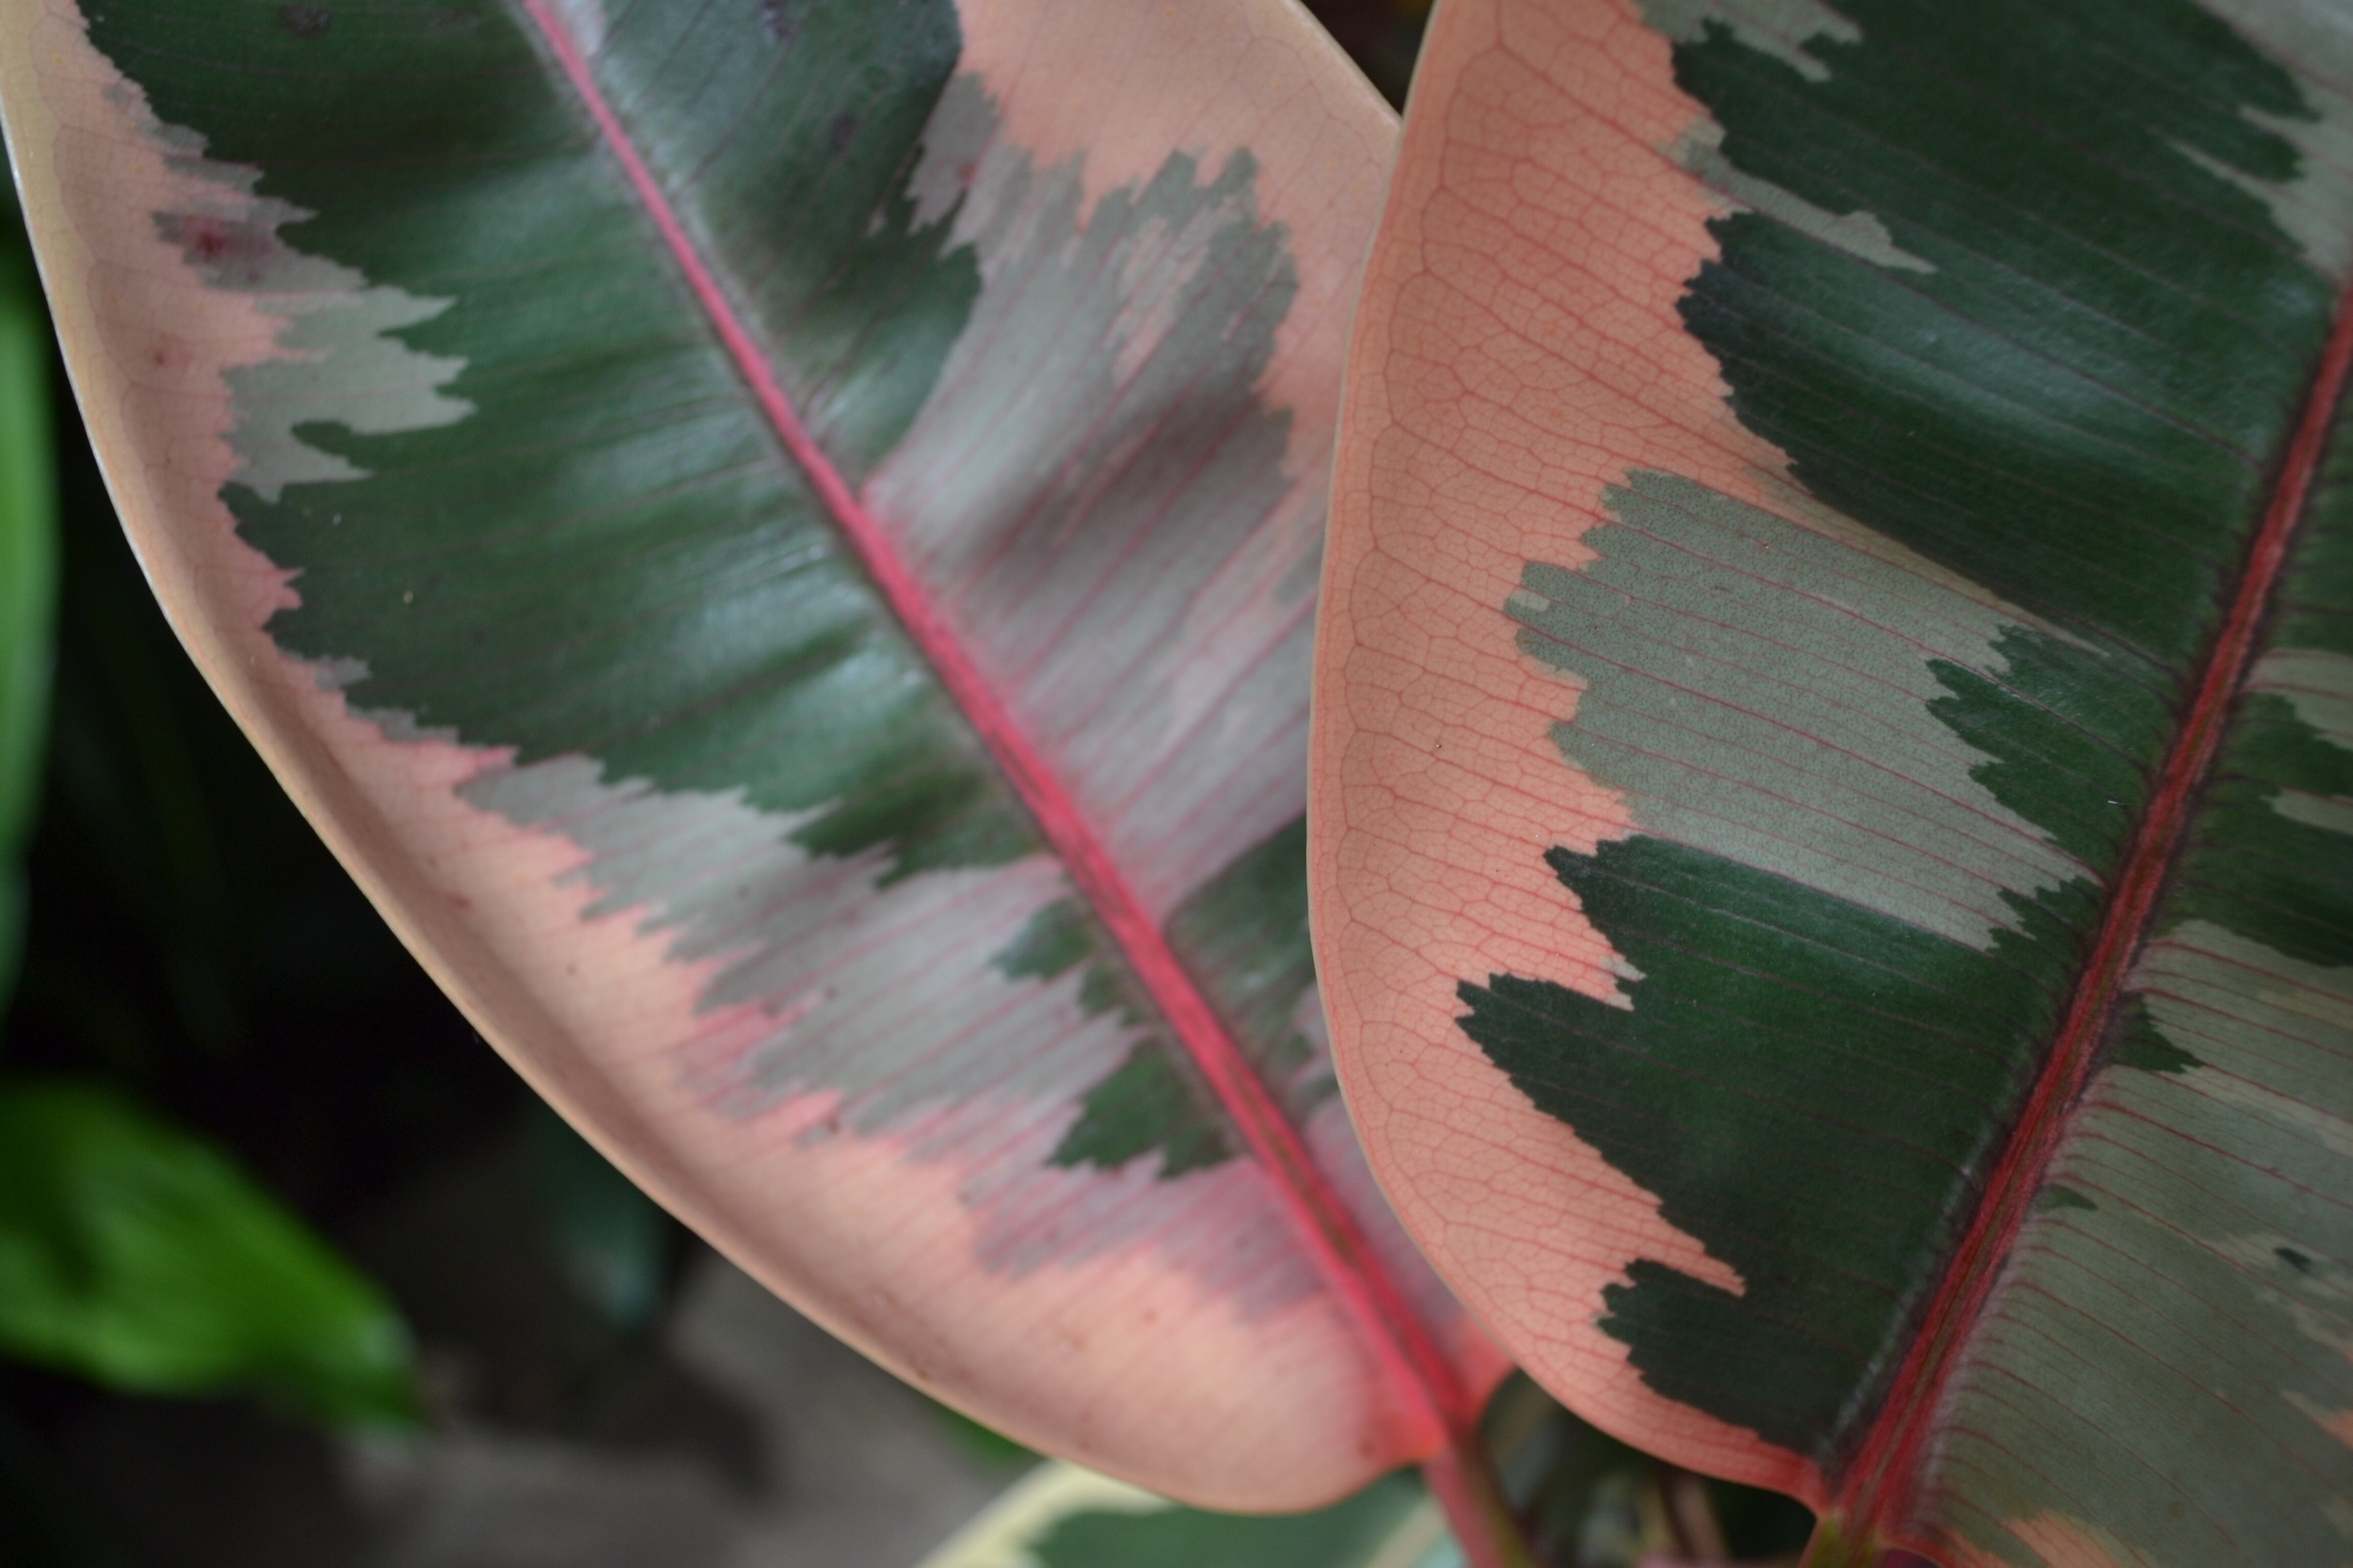 And how ridiculous is this rubber plant? YOU LOOK LIKE YOU'RE PAINTED HOW.